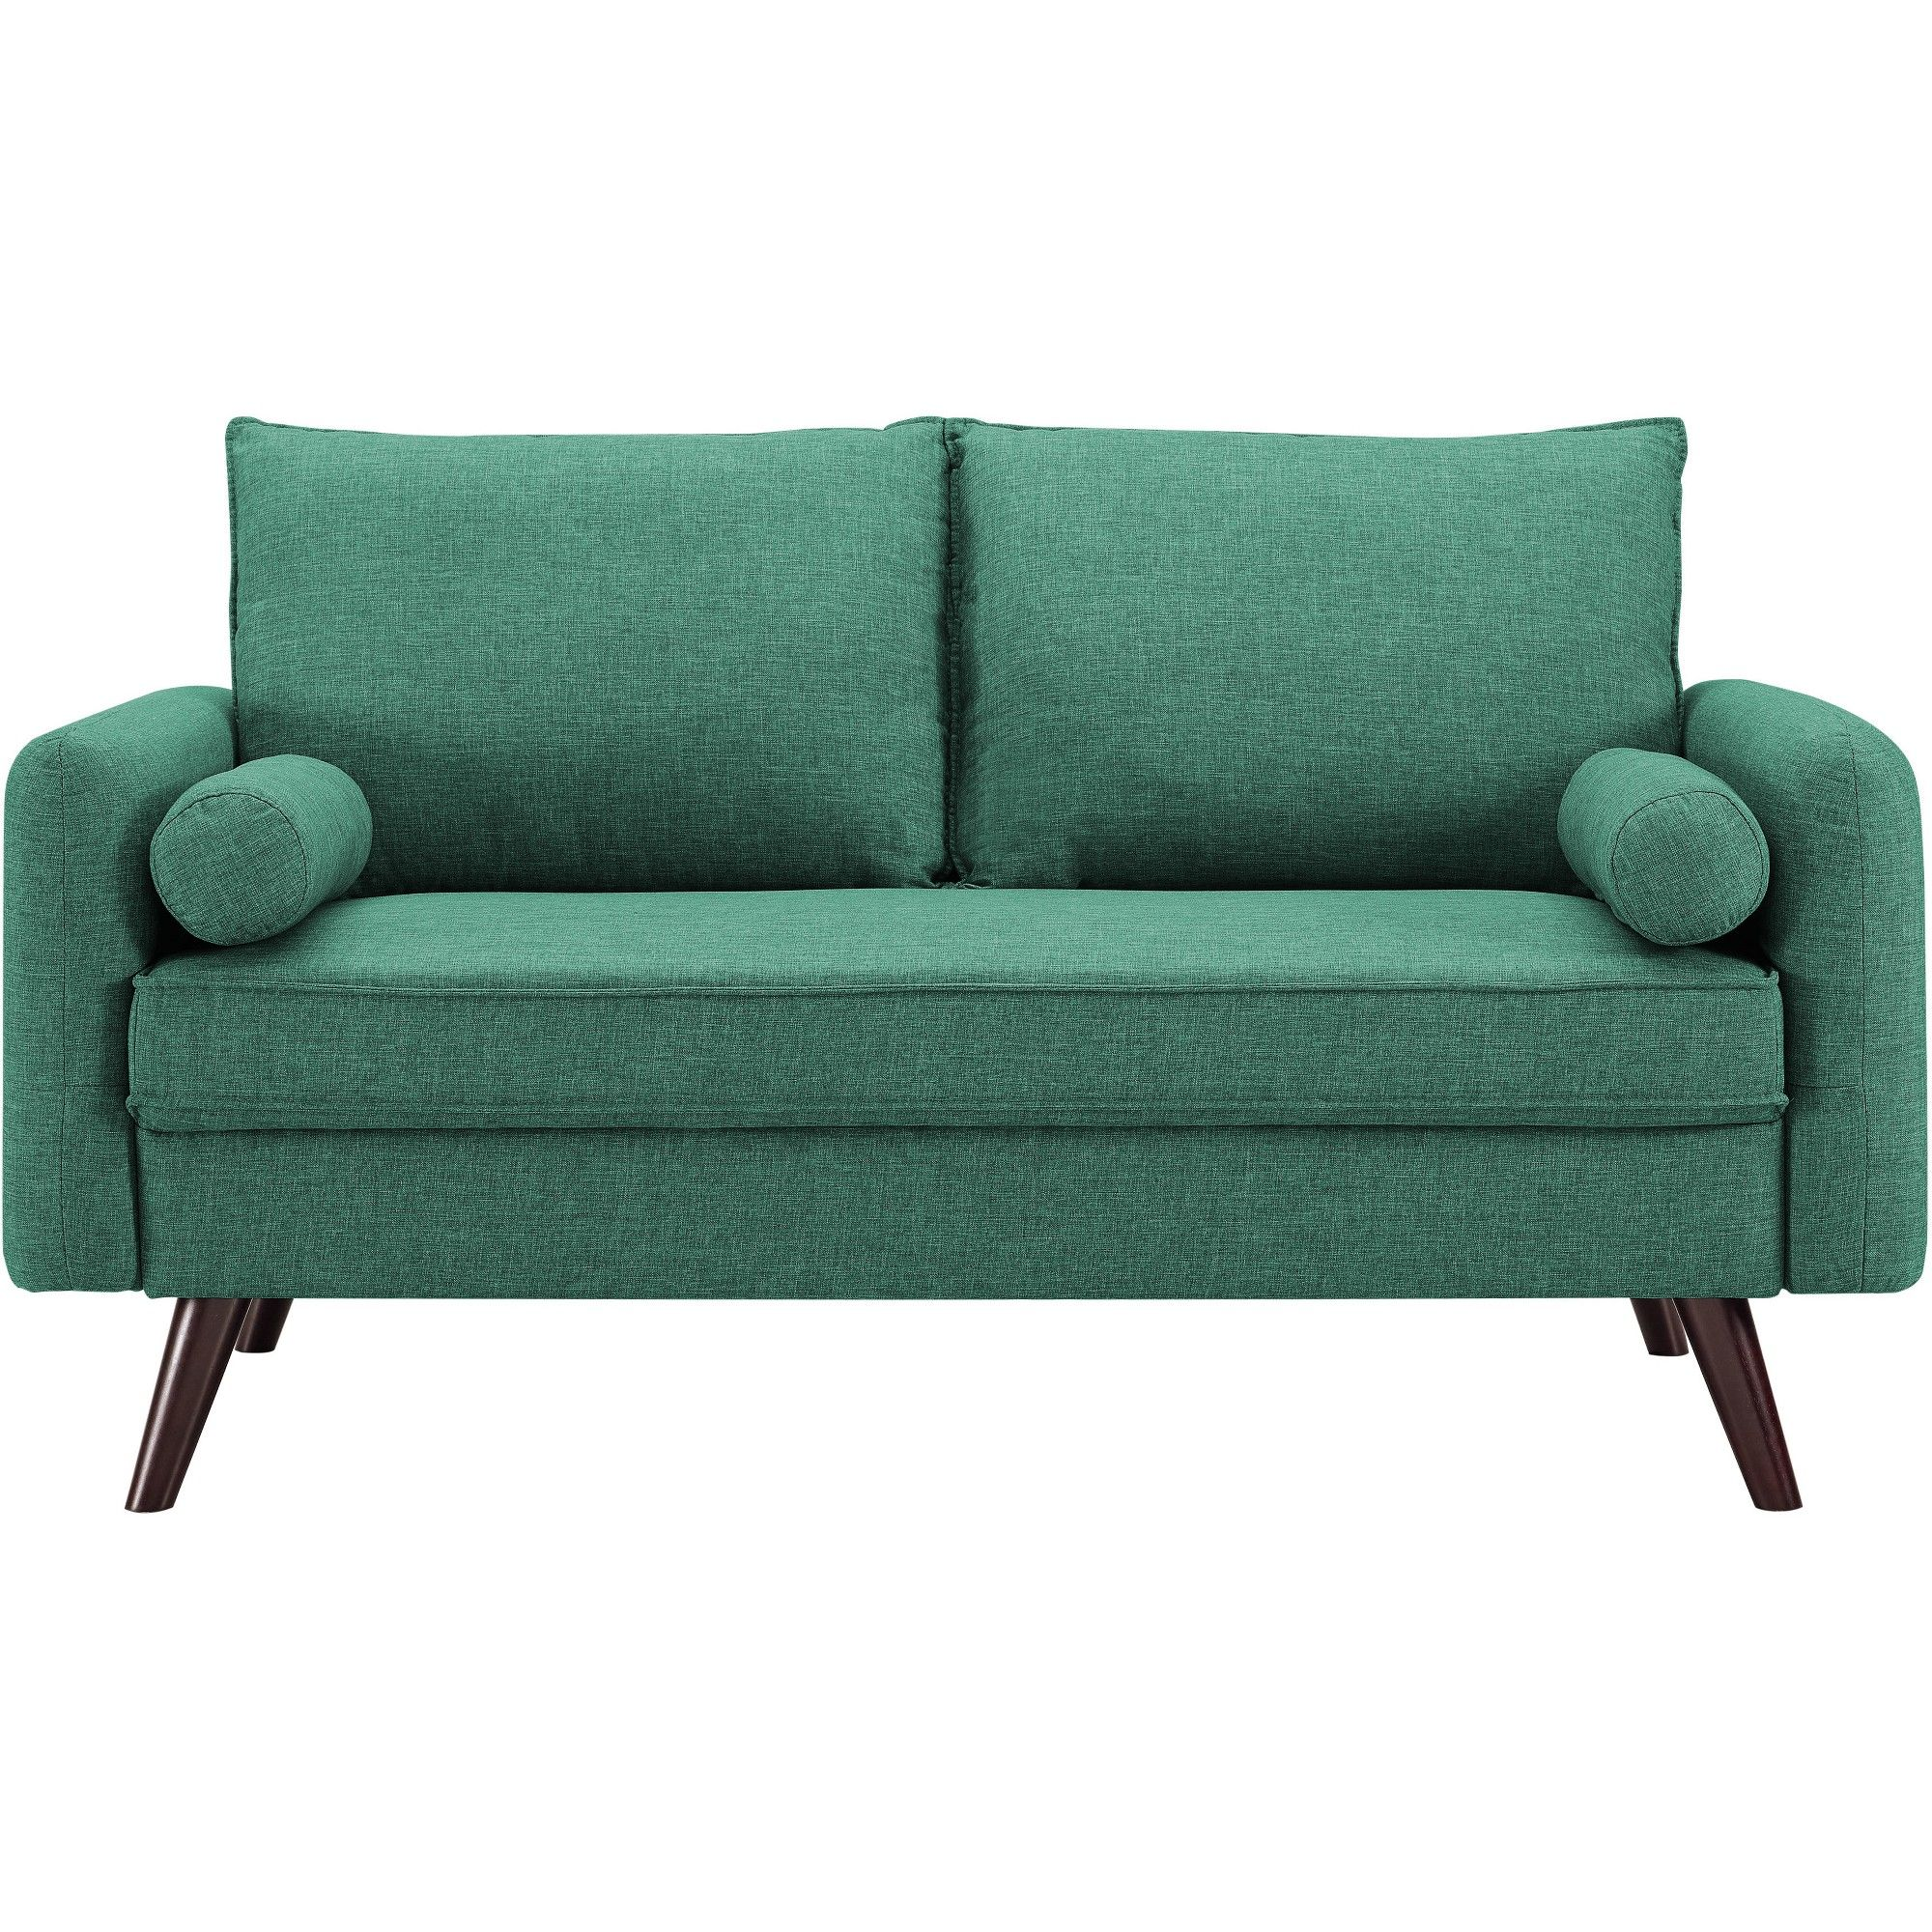 Pleasant Carmel Mid Century Modern Loveseat In Sea Foam Lifestyle Squirreltailoven Fun Painted Chair Ideas Images Squirreltailovenorg